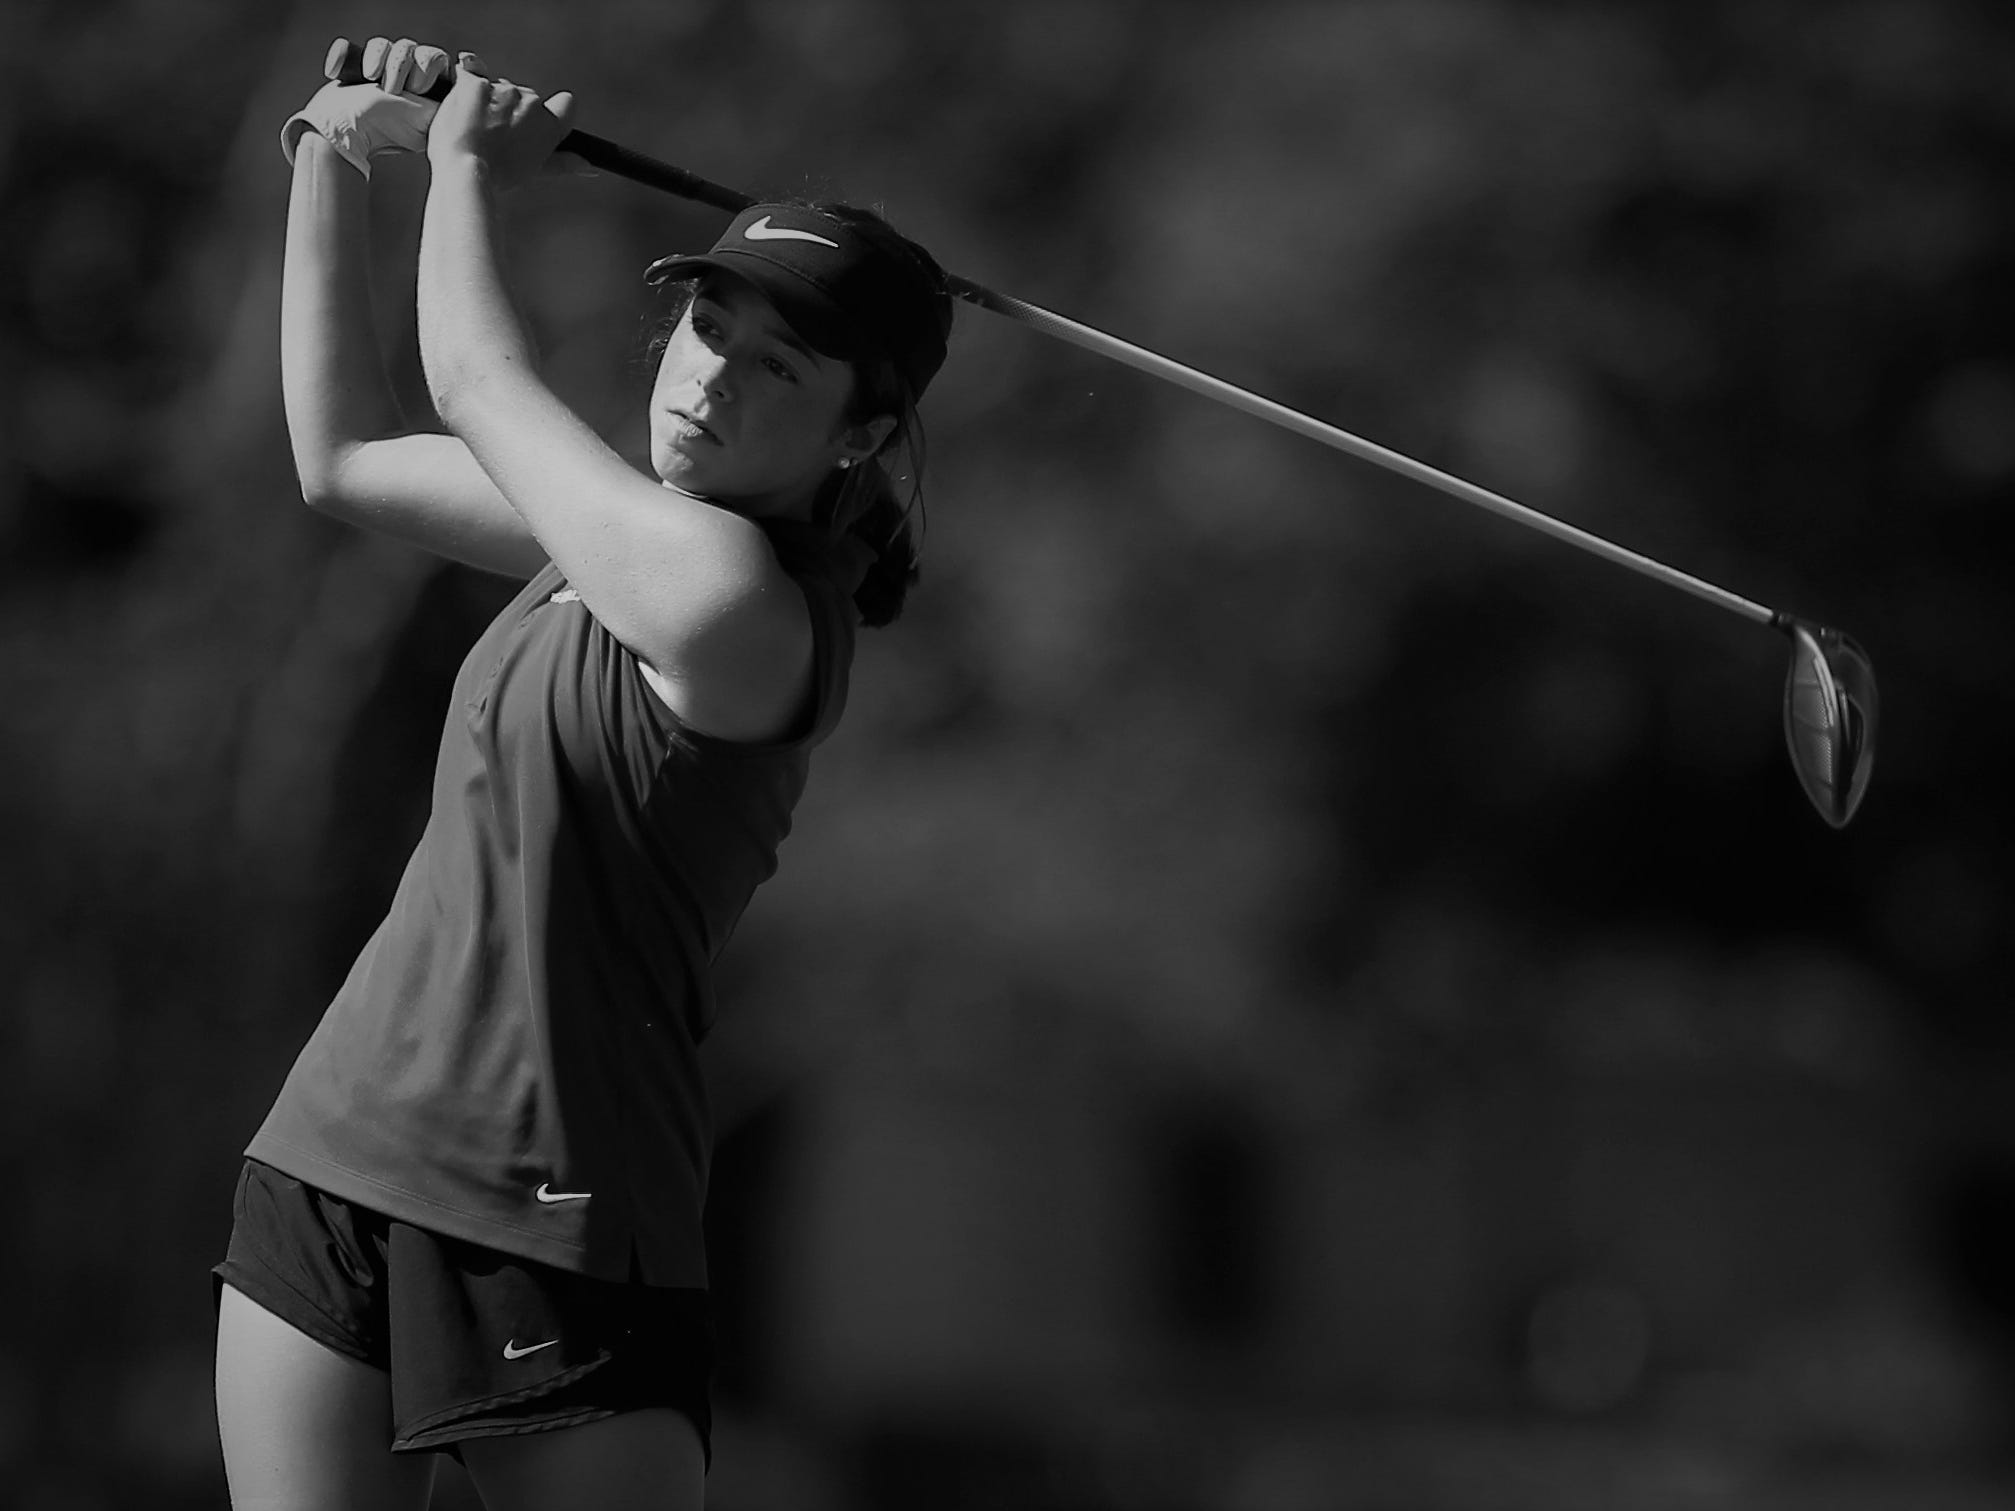 Chiles sophomore Abby LaMothe watches a tee shot during the girls golf Panhandle Invitational at Killearn Country Club, Oct. 4, 2018.